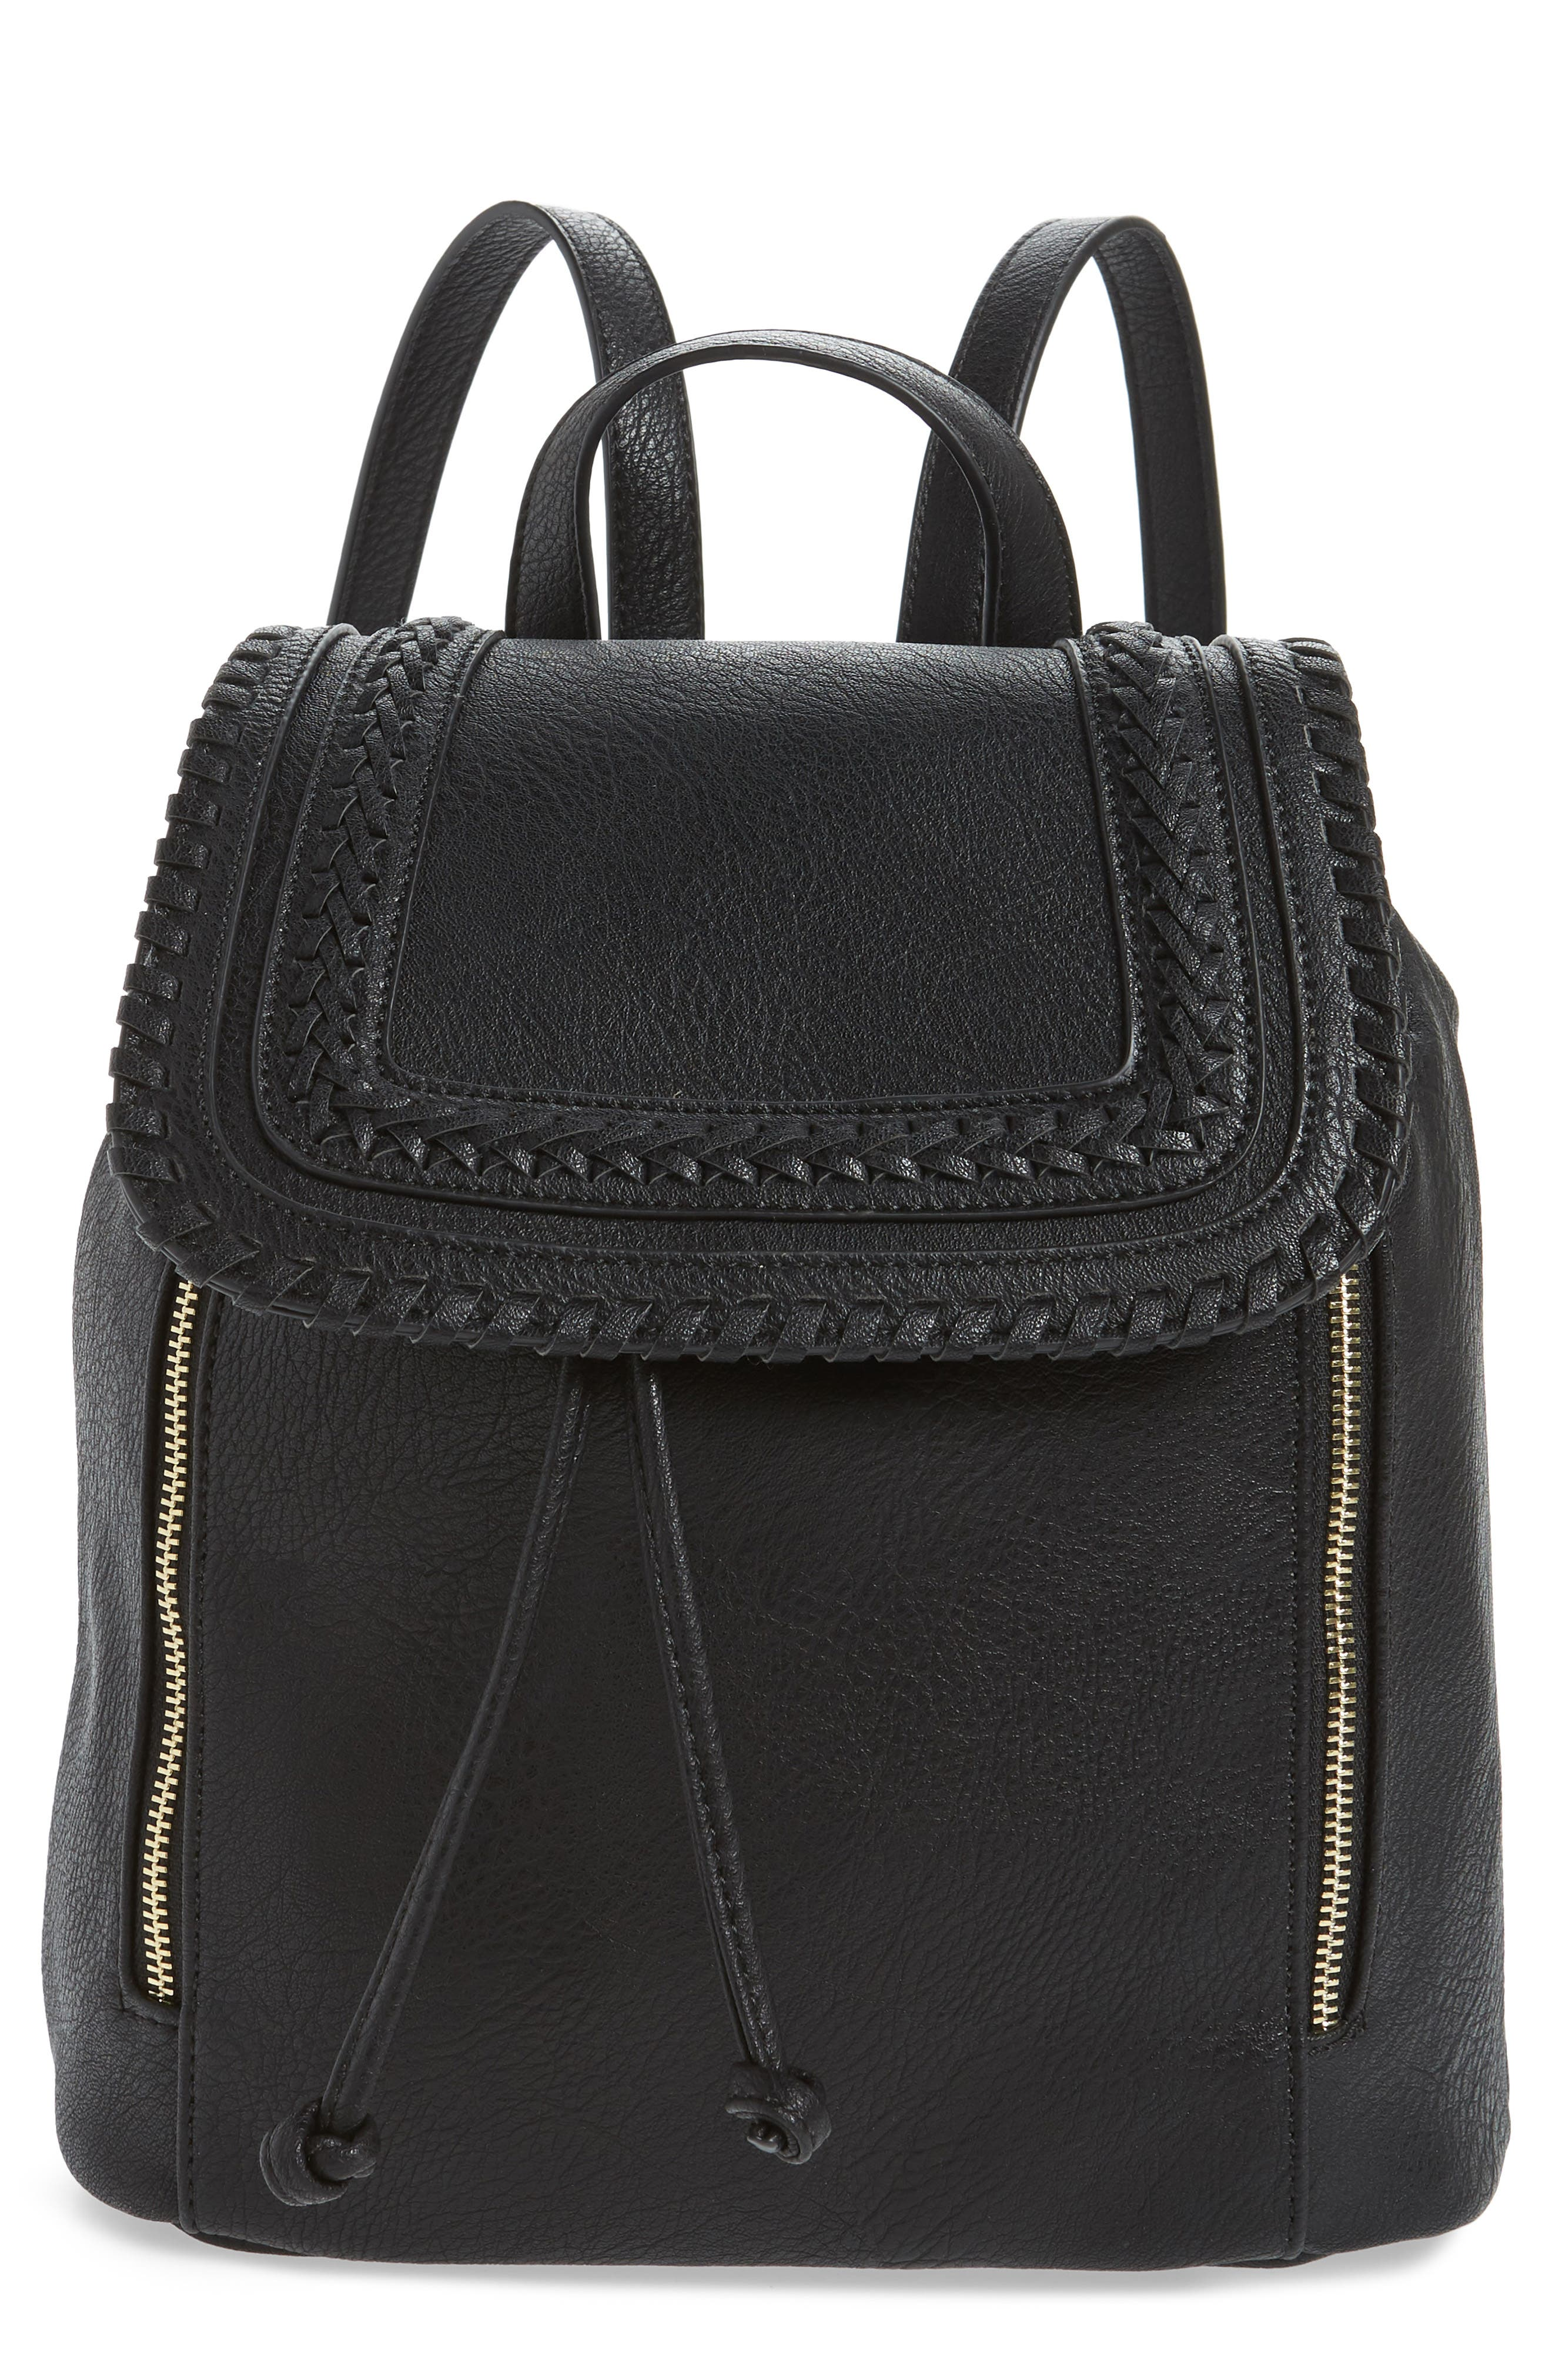 Sole Society Destin Faux Leather Backpack - Black